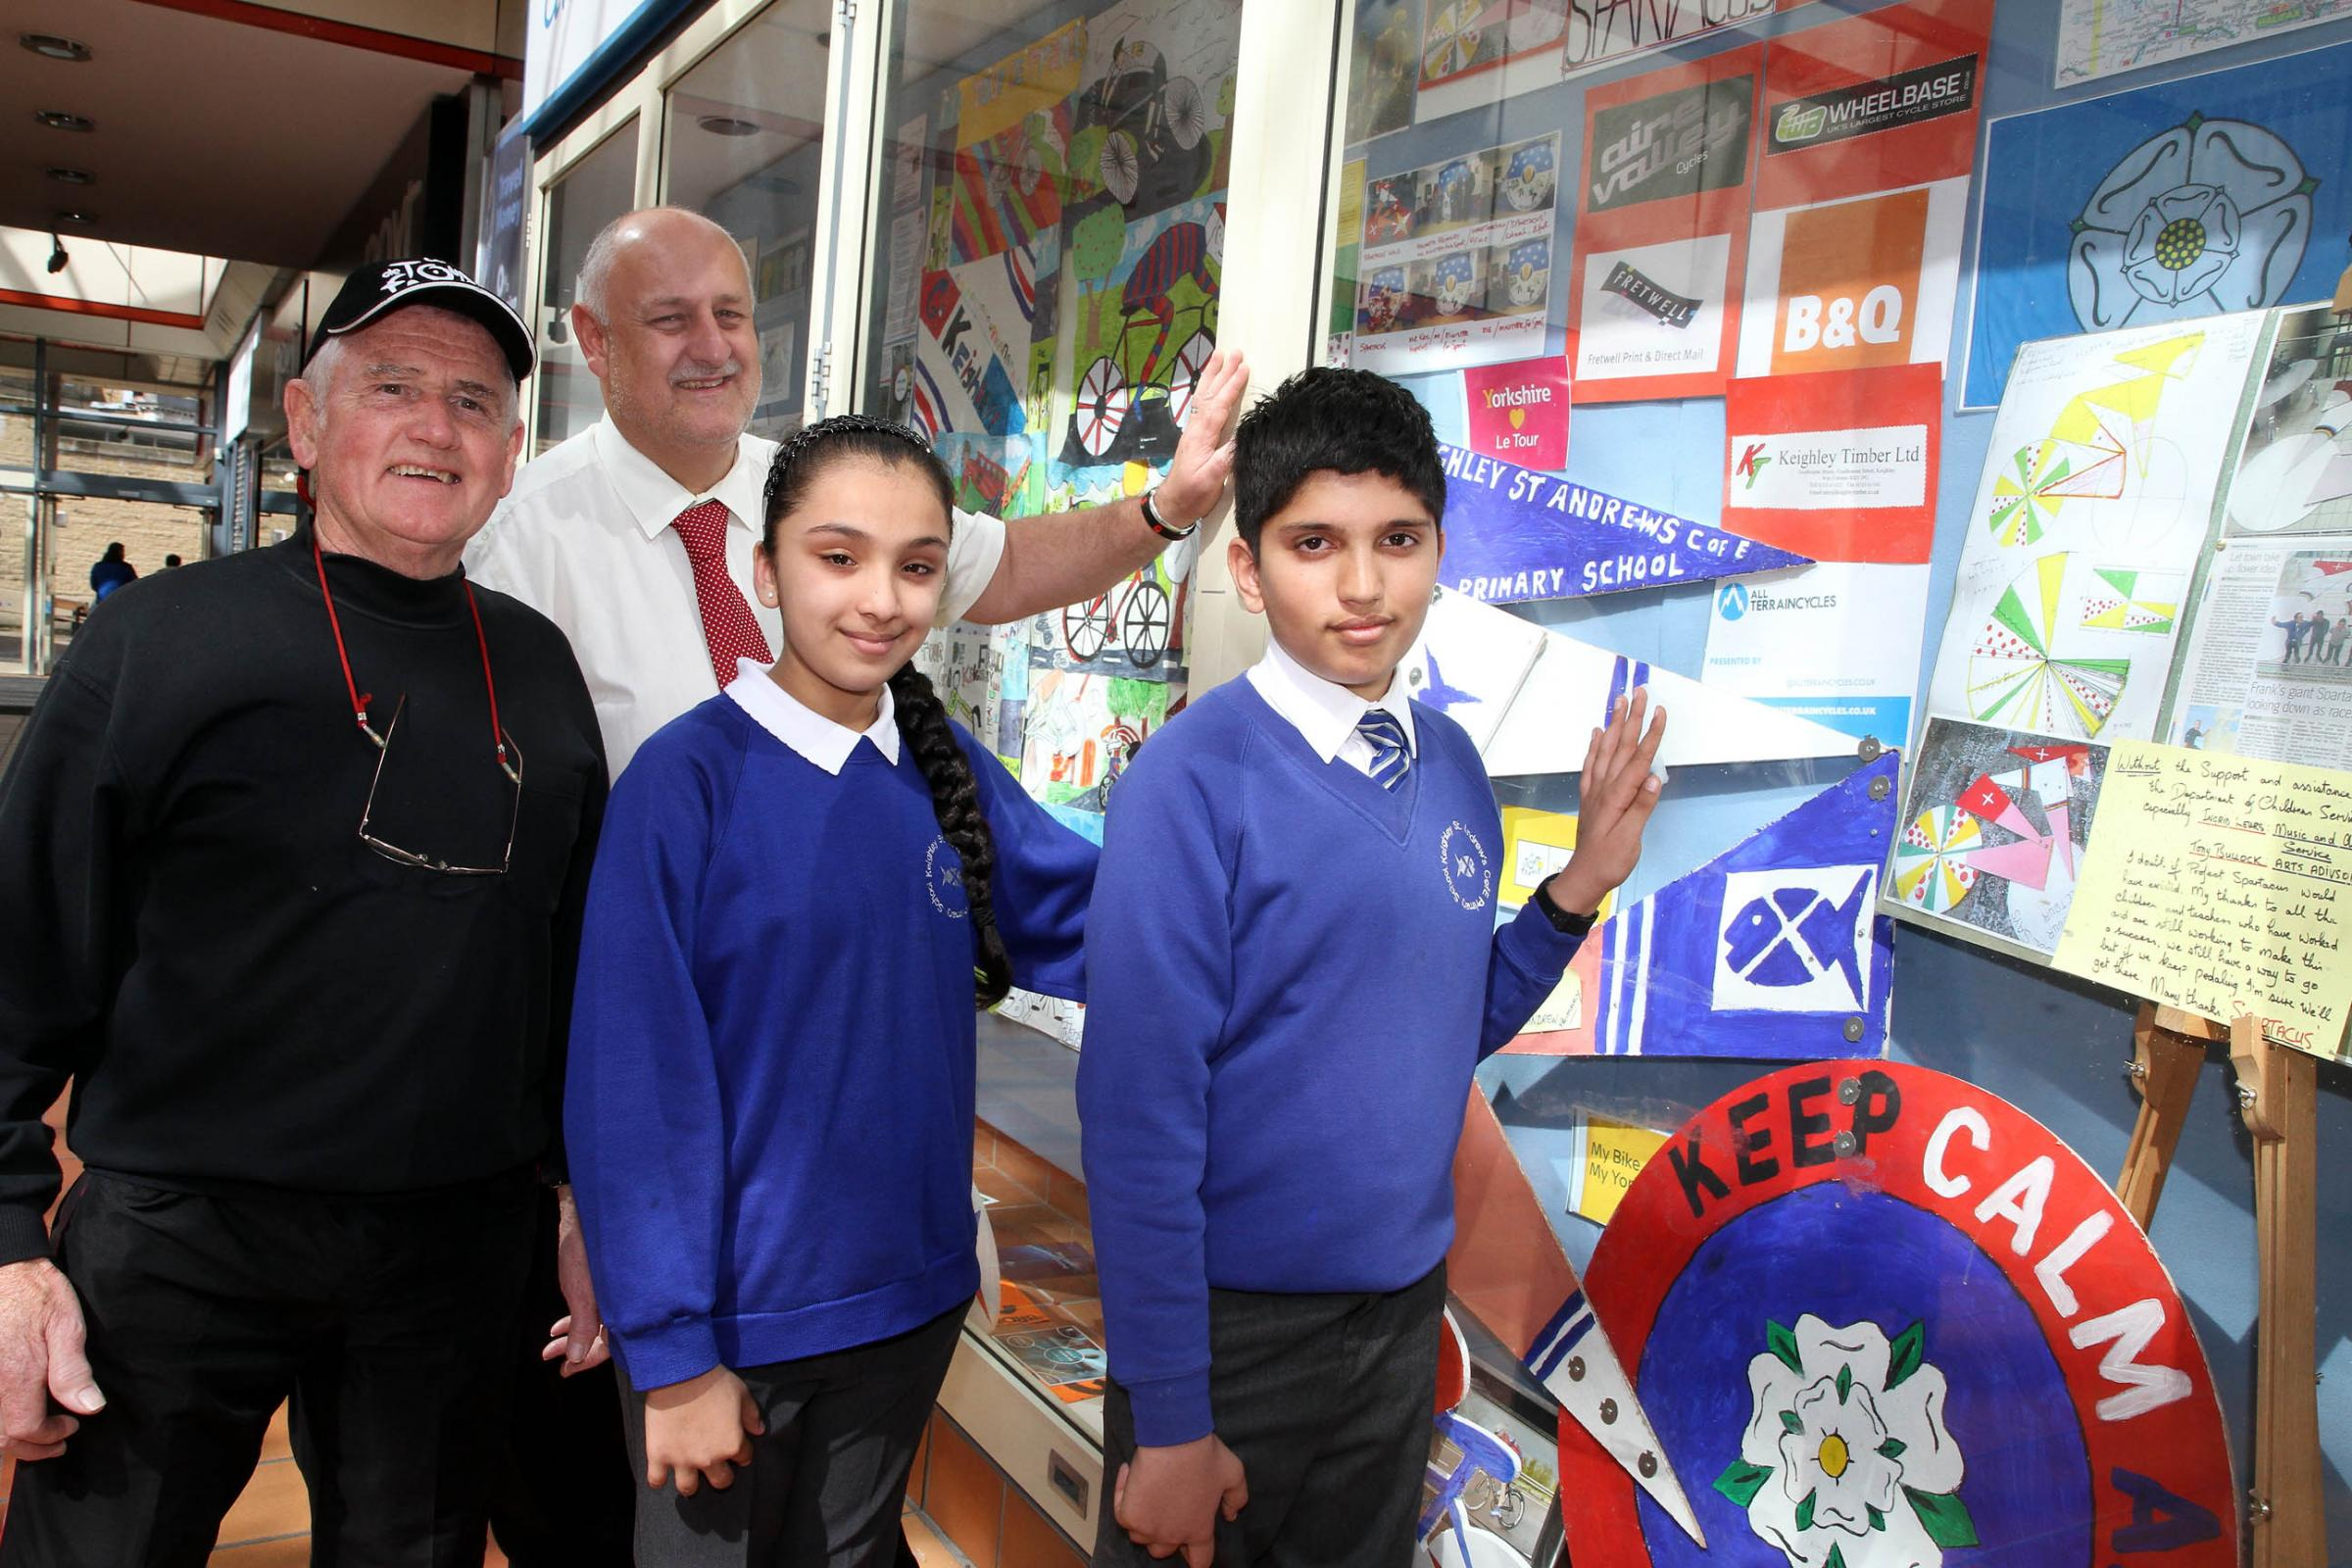 Frank O'Dwyer, left, joins Airedale Shopping Centre manager Steve Seymour and St Andrew's Primary School pupils Halina Mahmood and Bilal Sharif at the Tour de France Grand Depart display